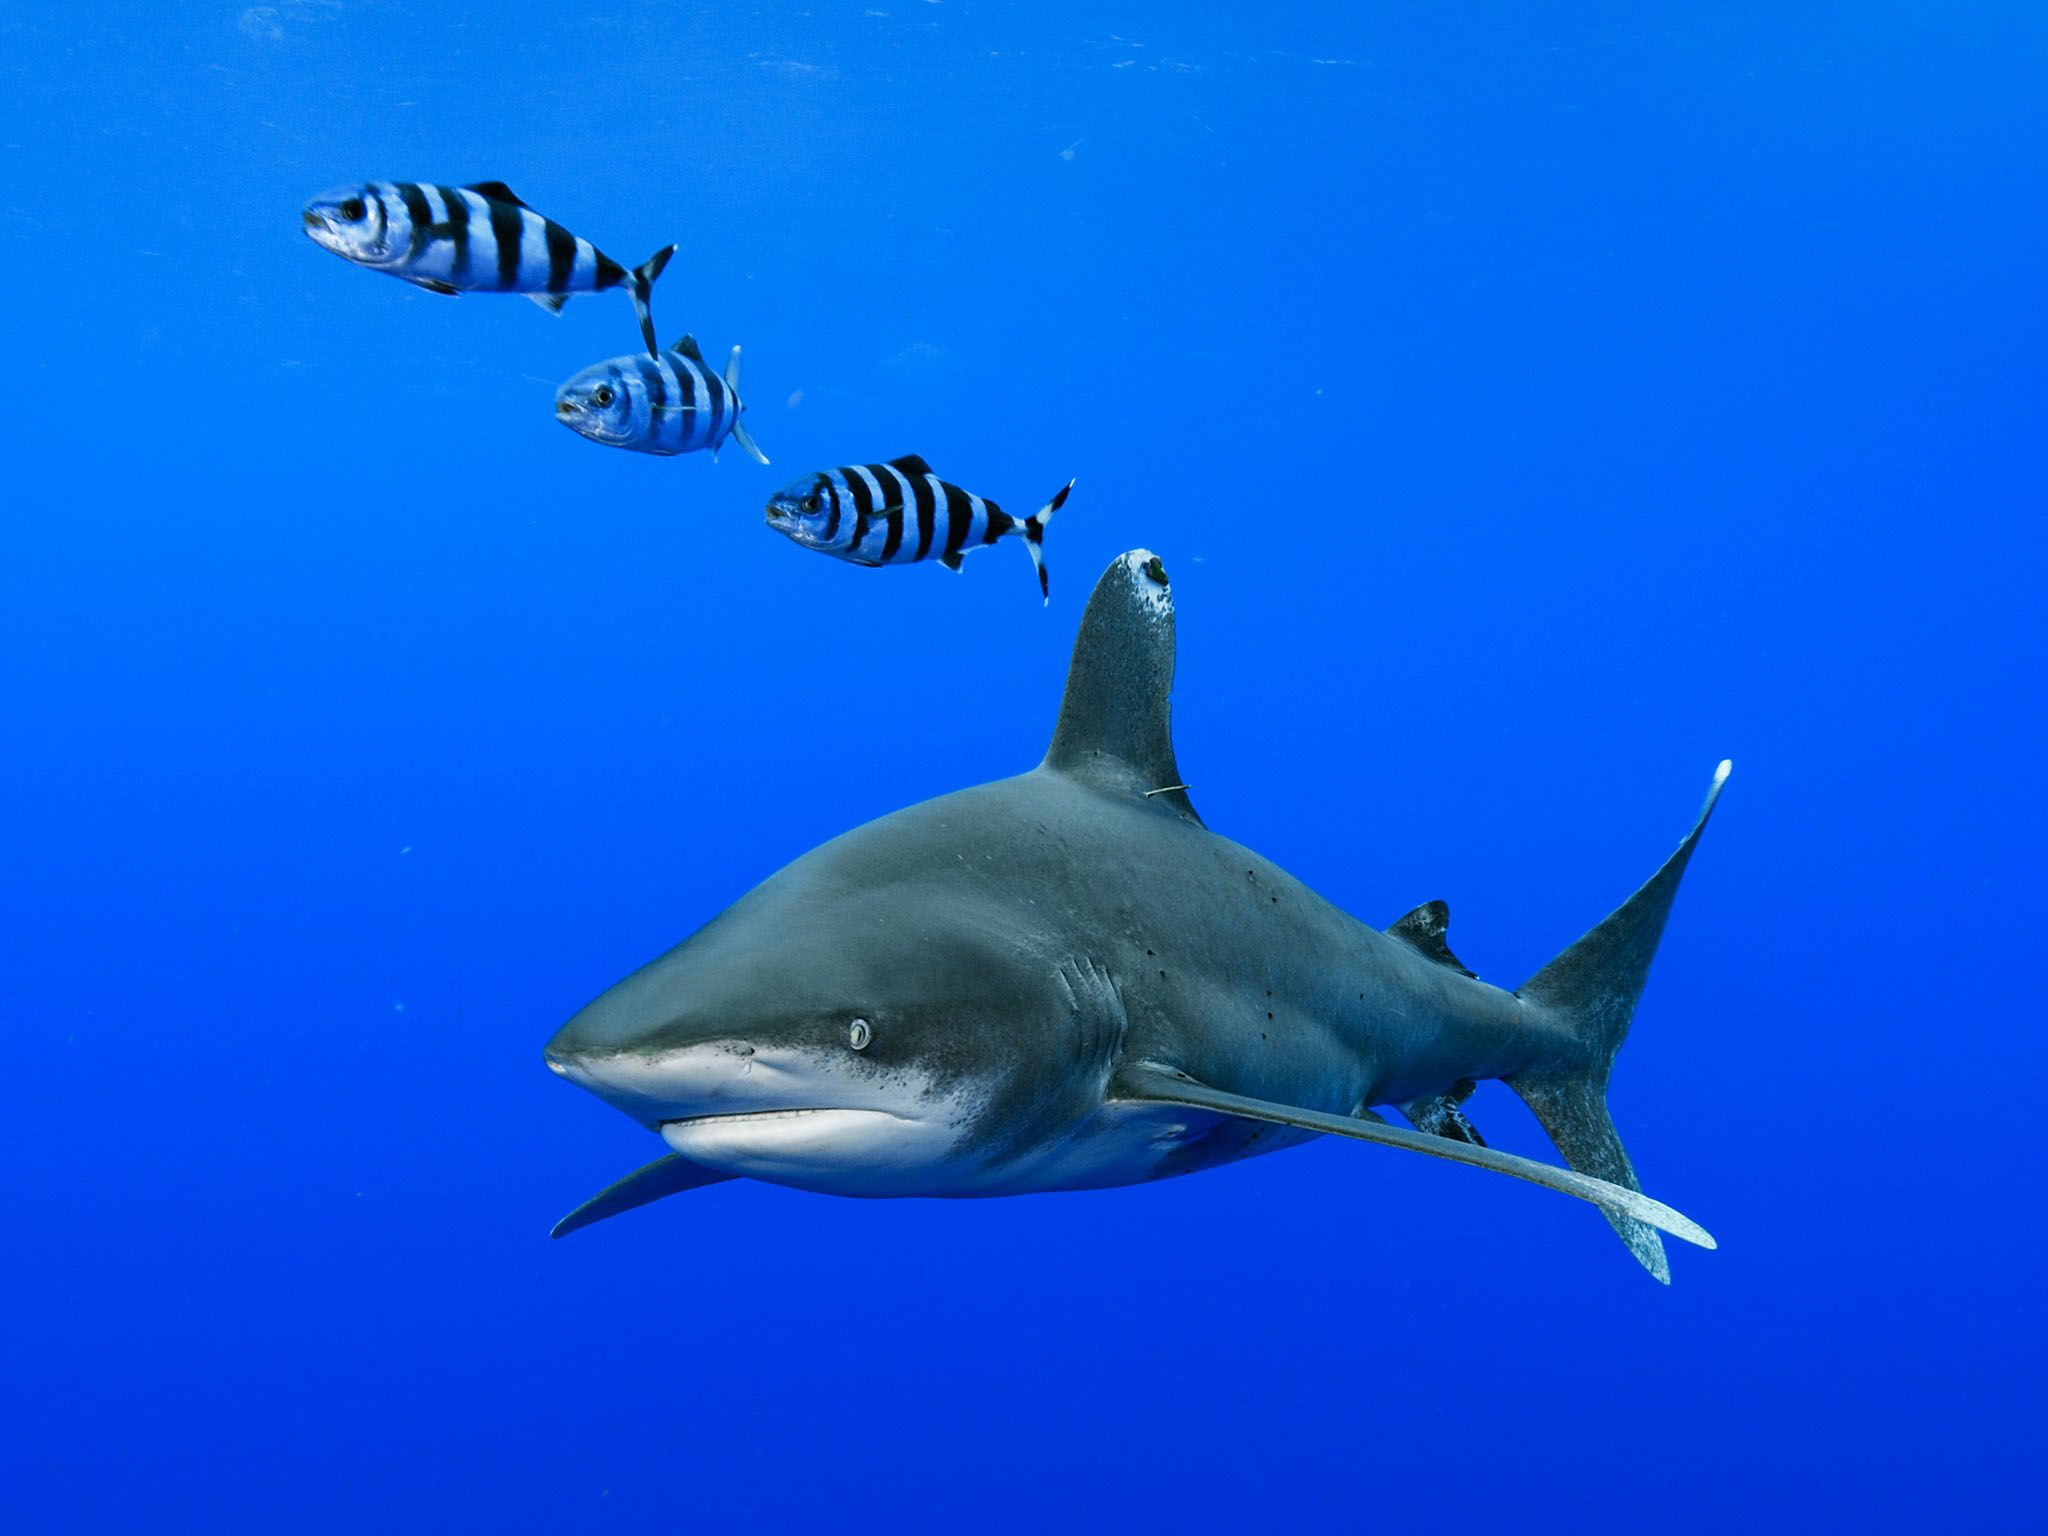 The Bahamas: Oceanic whitetip shark (Carcharhinus longimanus) in the waters off Cat Island in... [Photo of the day - November 2016]